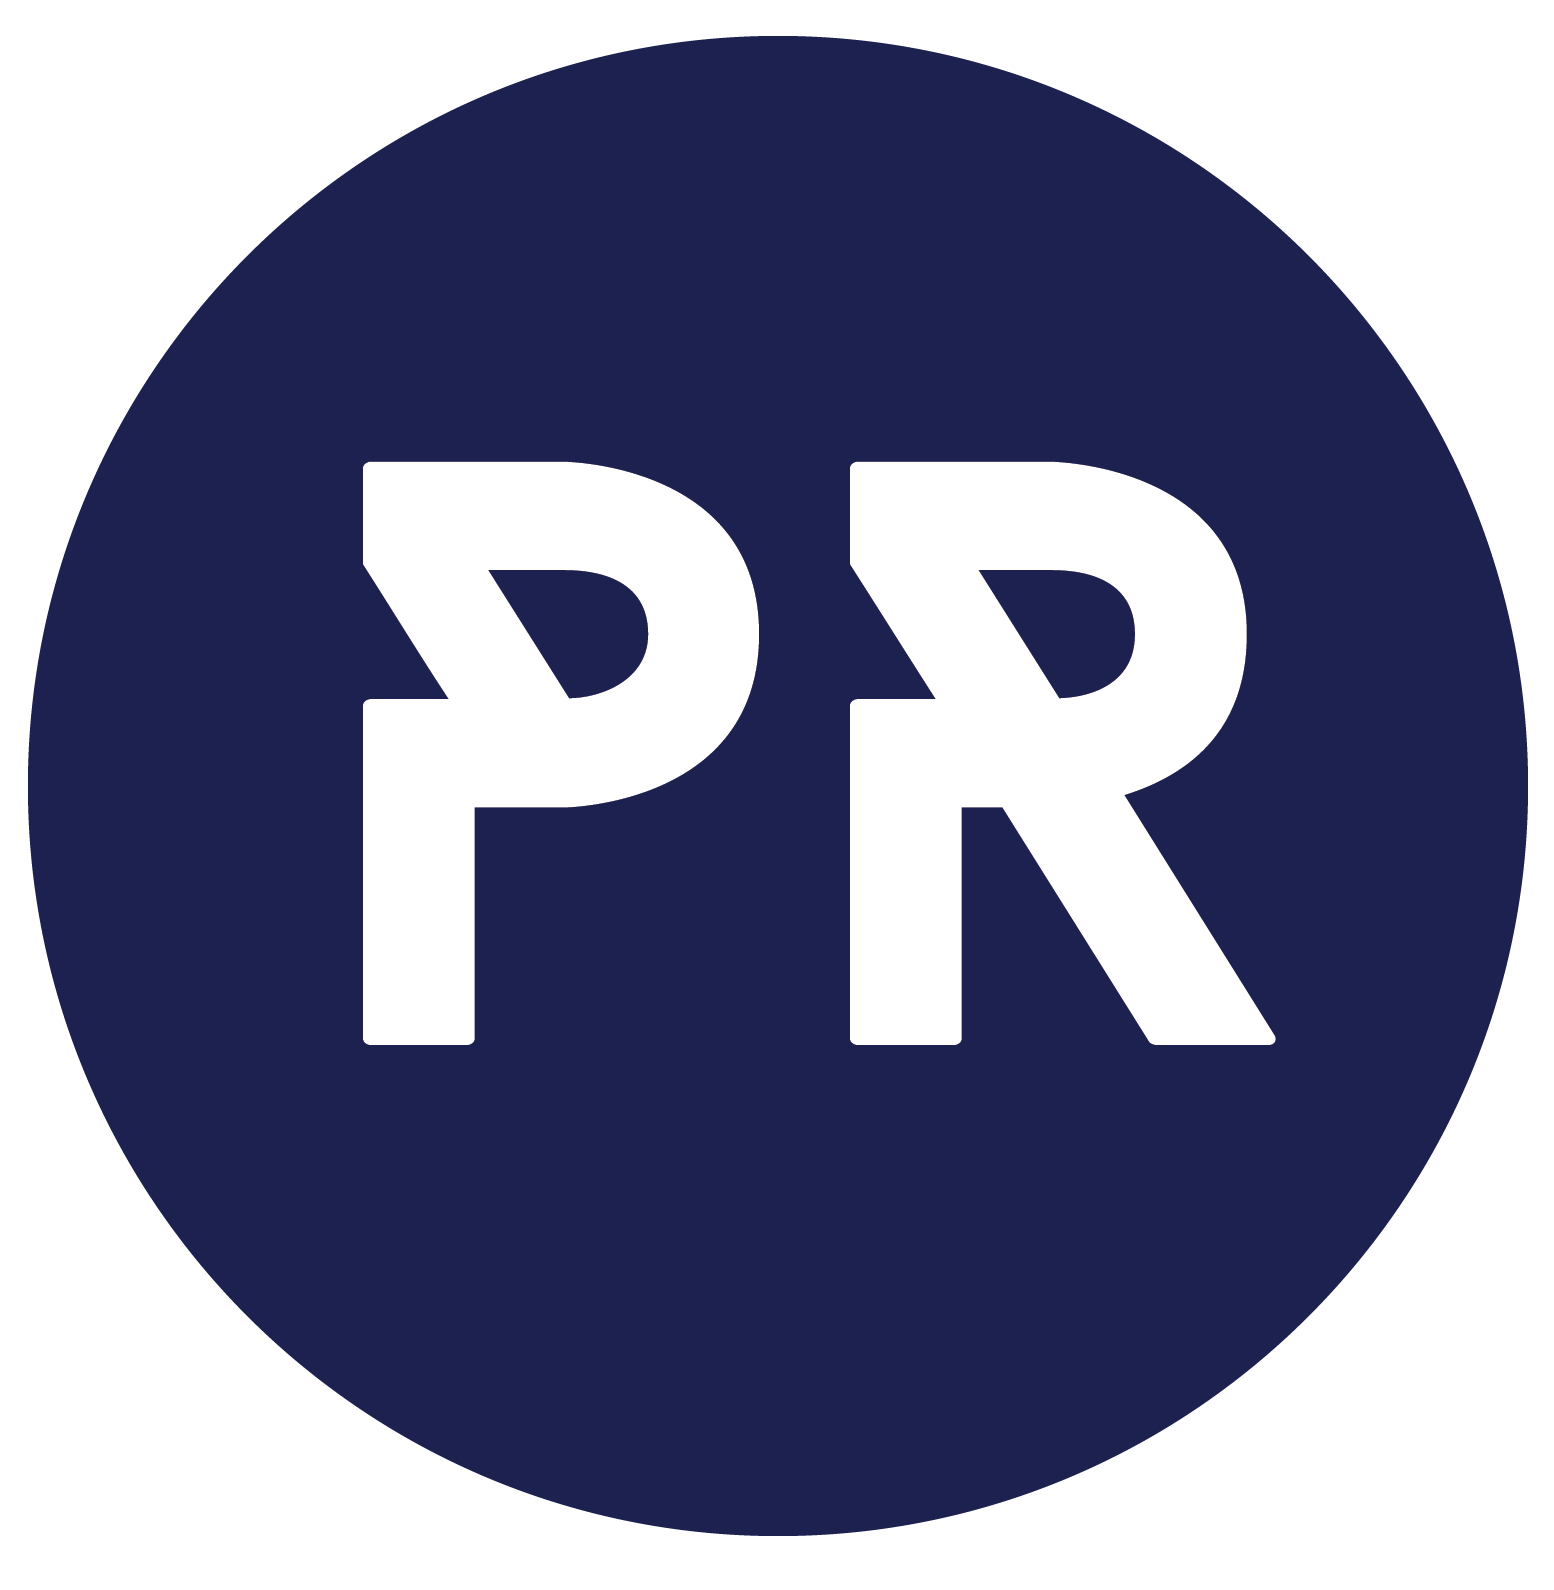 PR_Icon-01.png